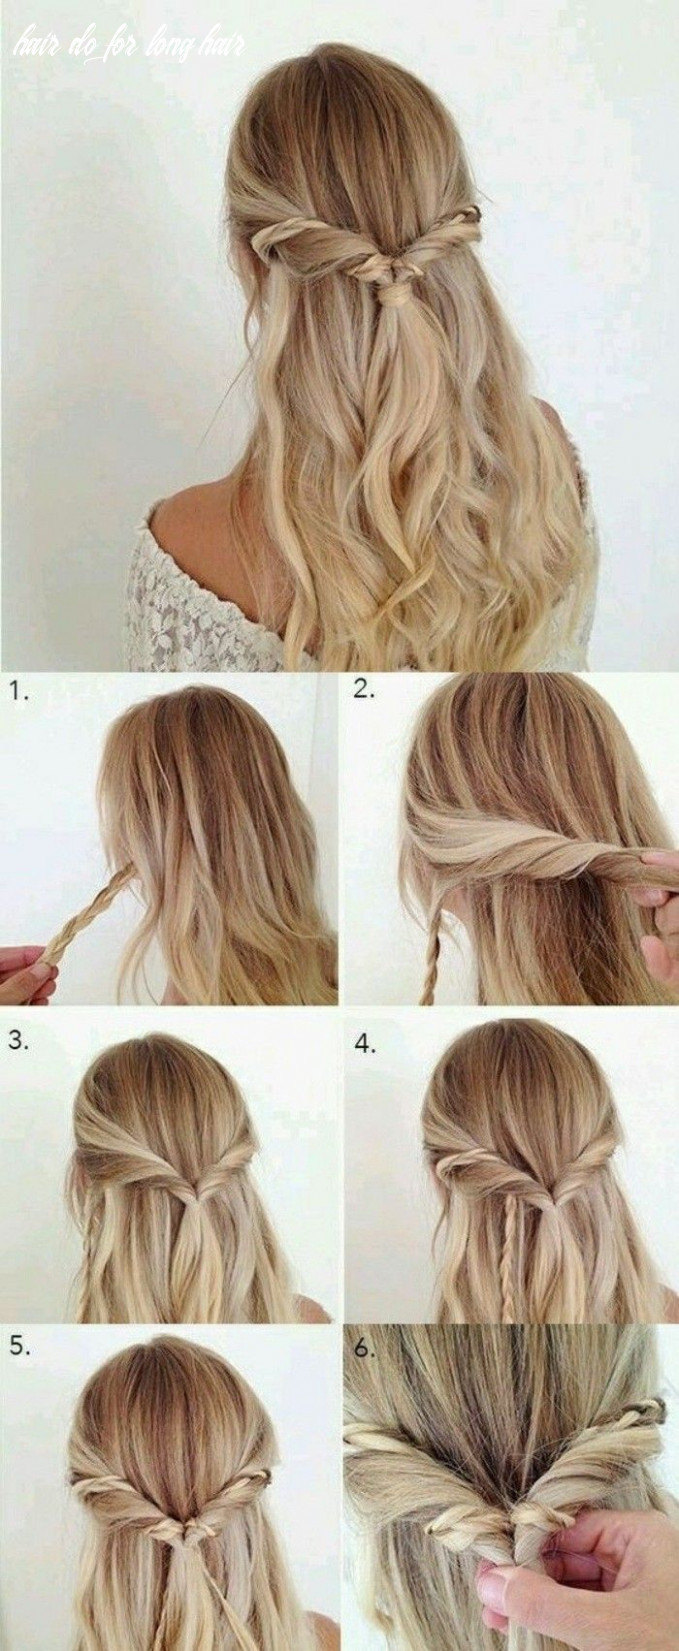 ▷ 9 ideas for beautiful hairstyles plus do it yourself